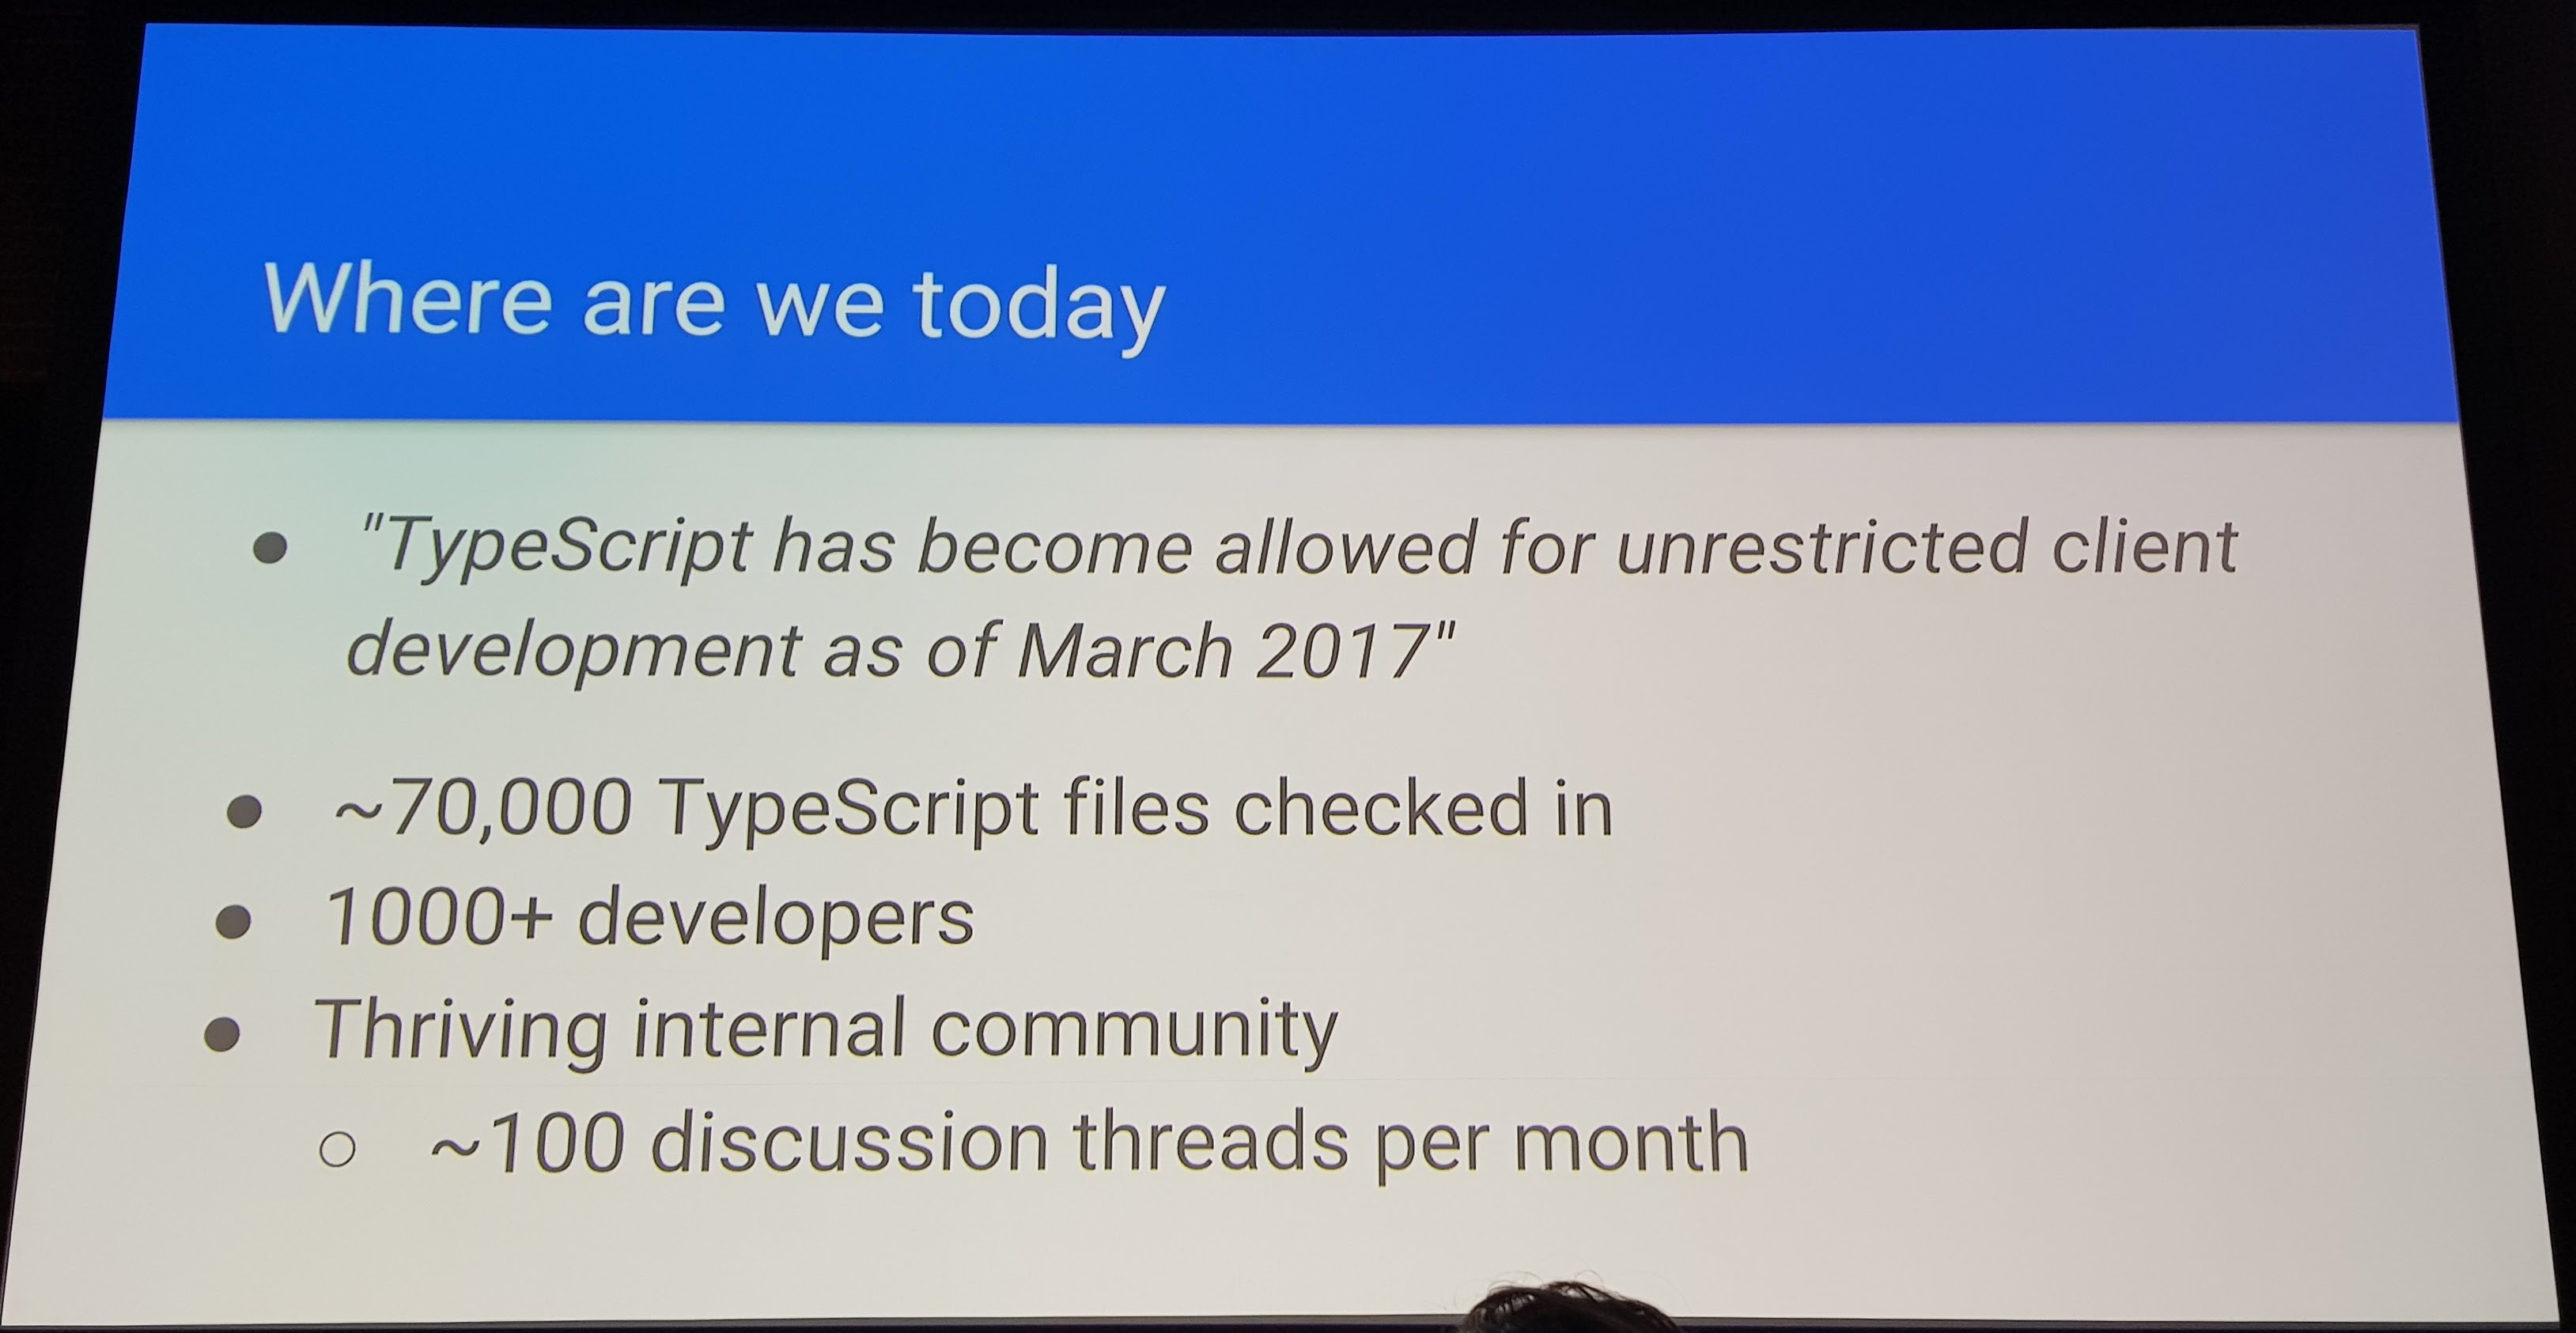 A slide showing the current usage of TypeScript at Google